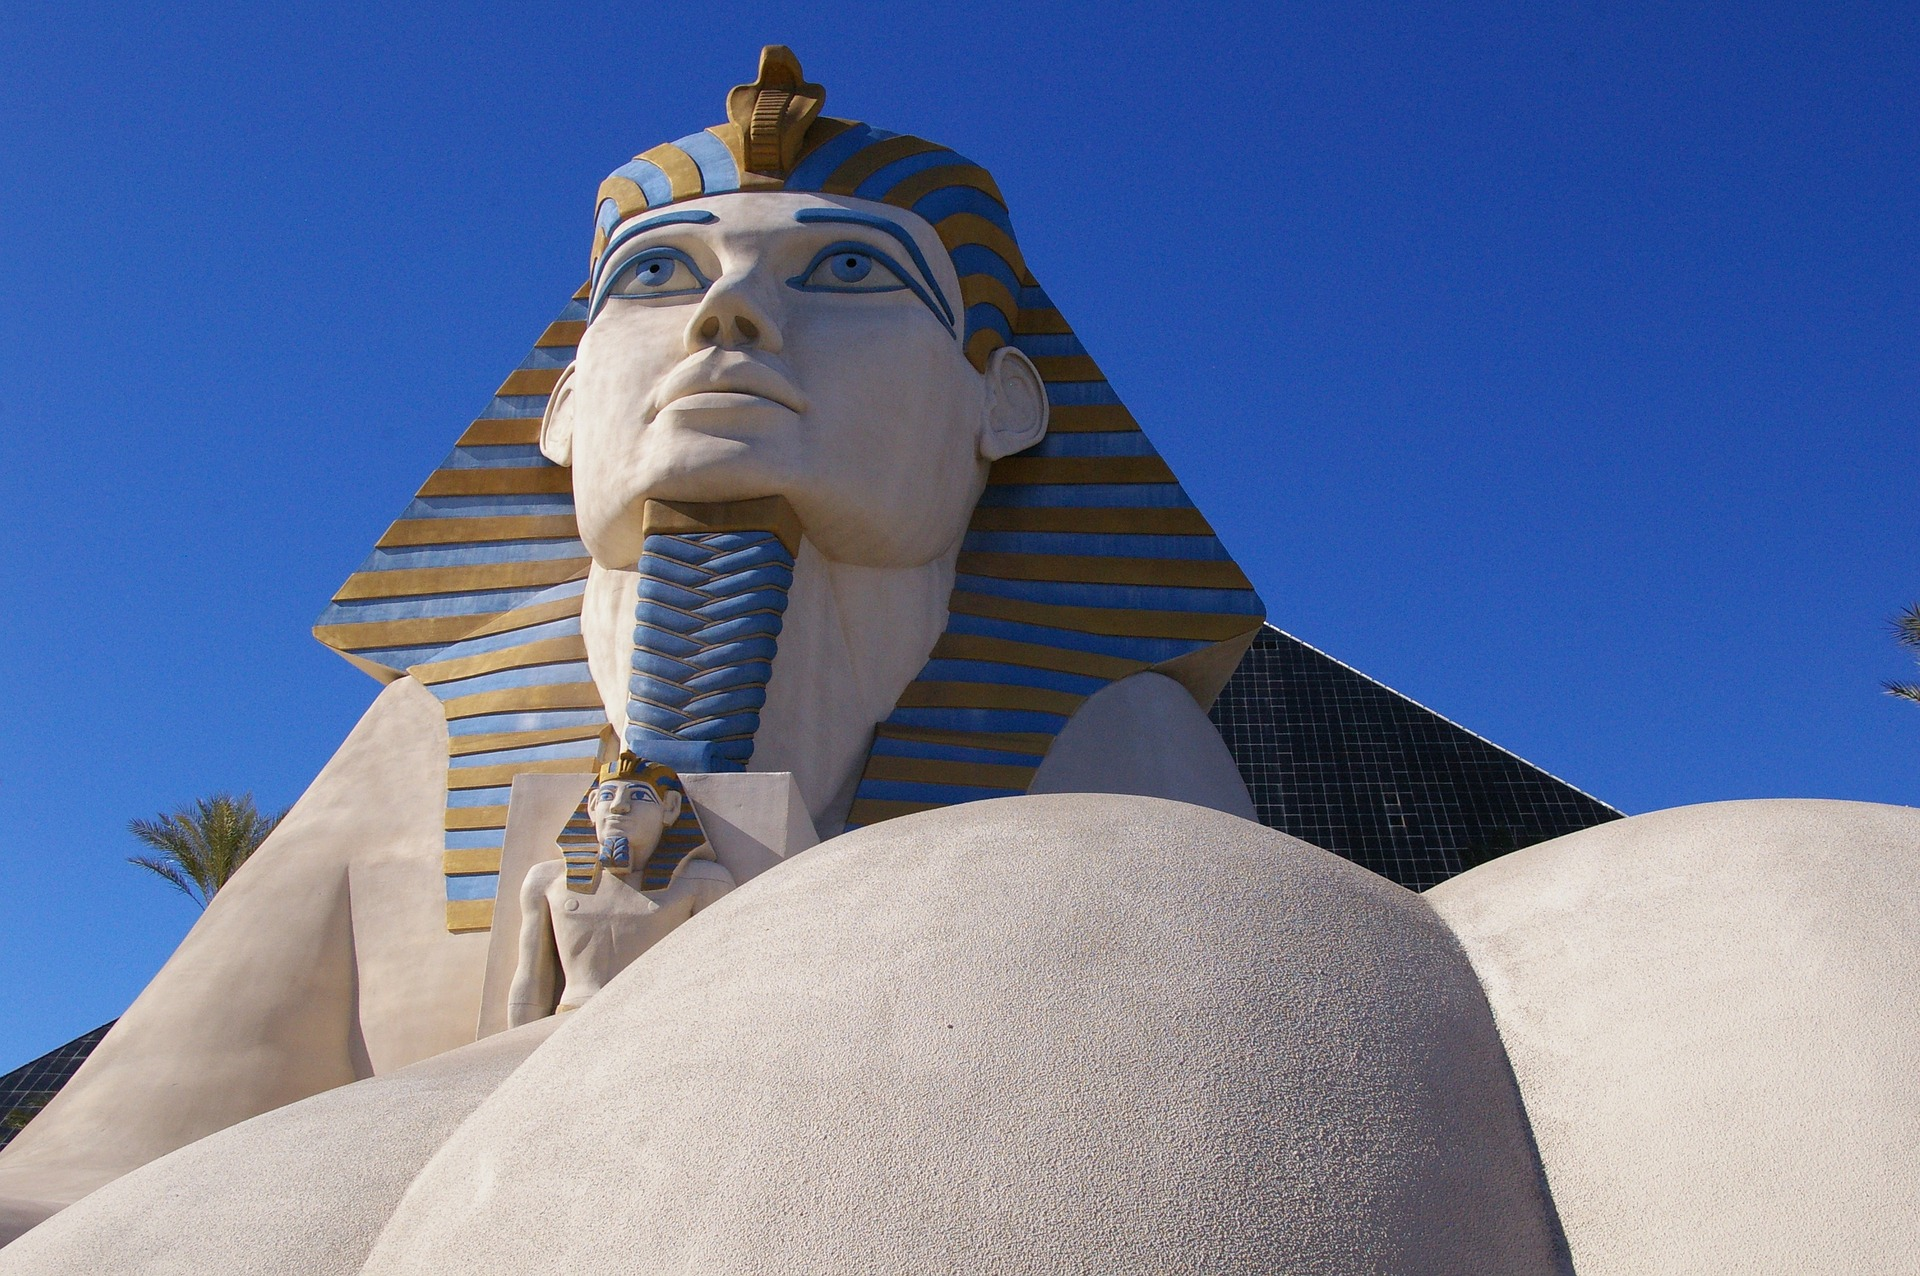 Sphinx statue at the Luxor Hotel and Casino in Las Vegas Nevada